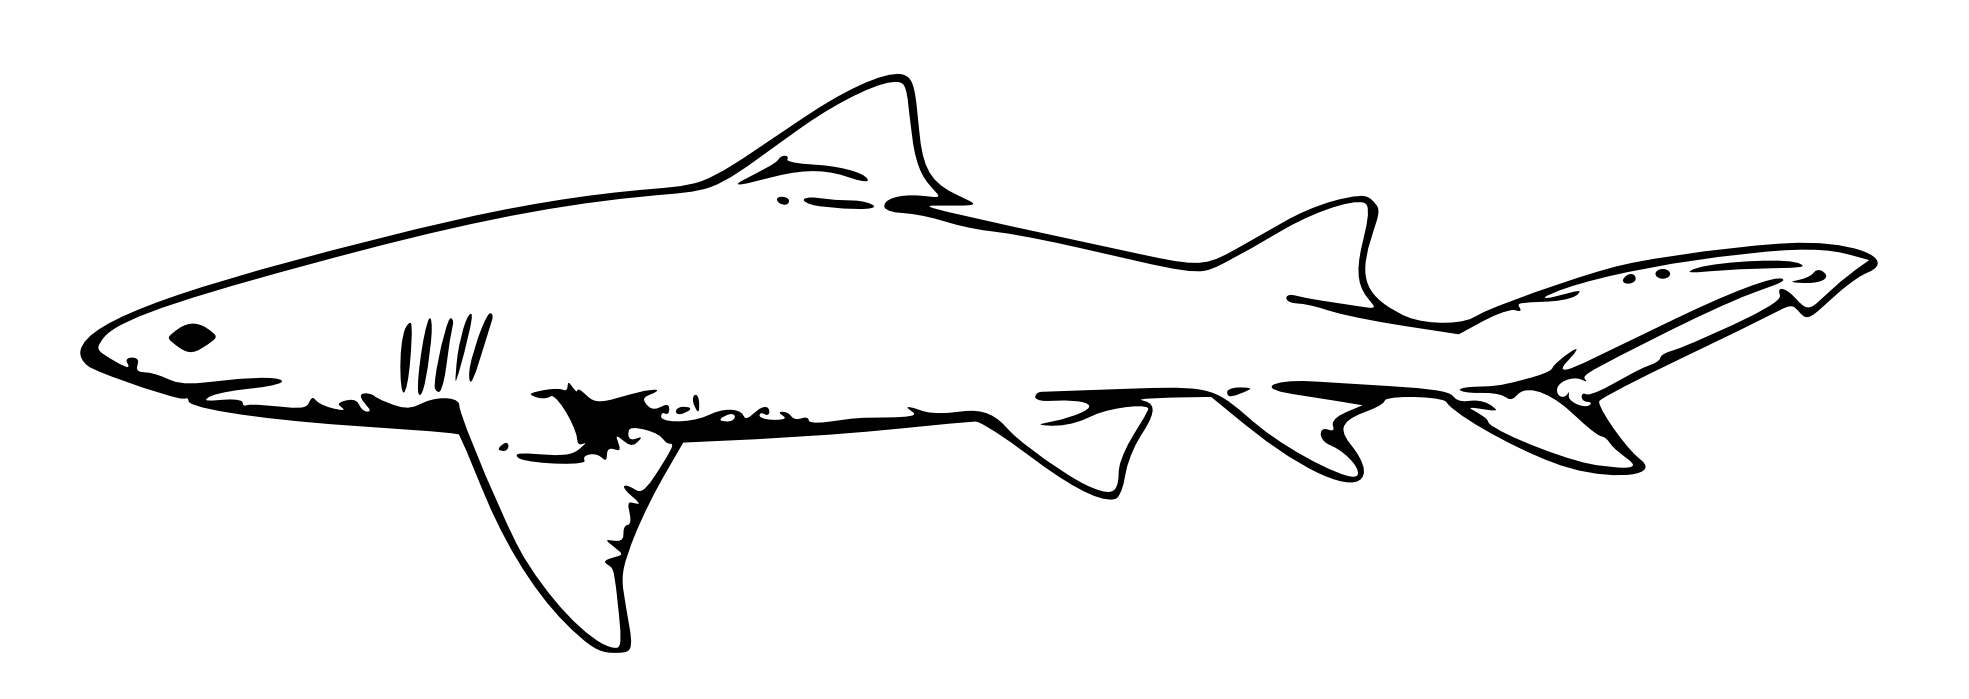 Book Shark Clipart - Clipart Kid